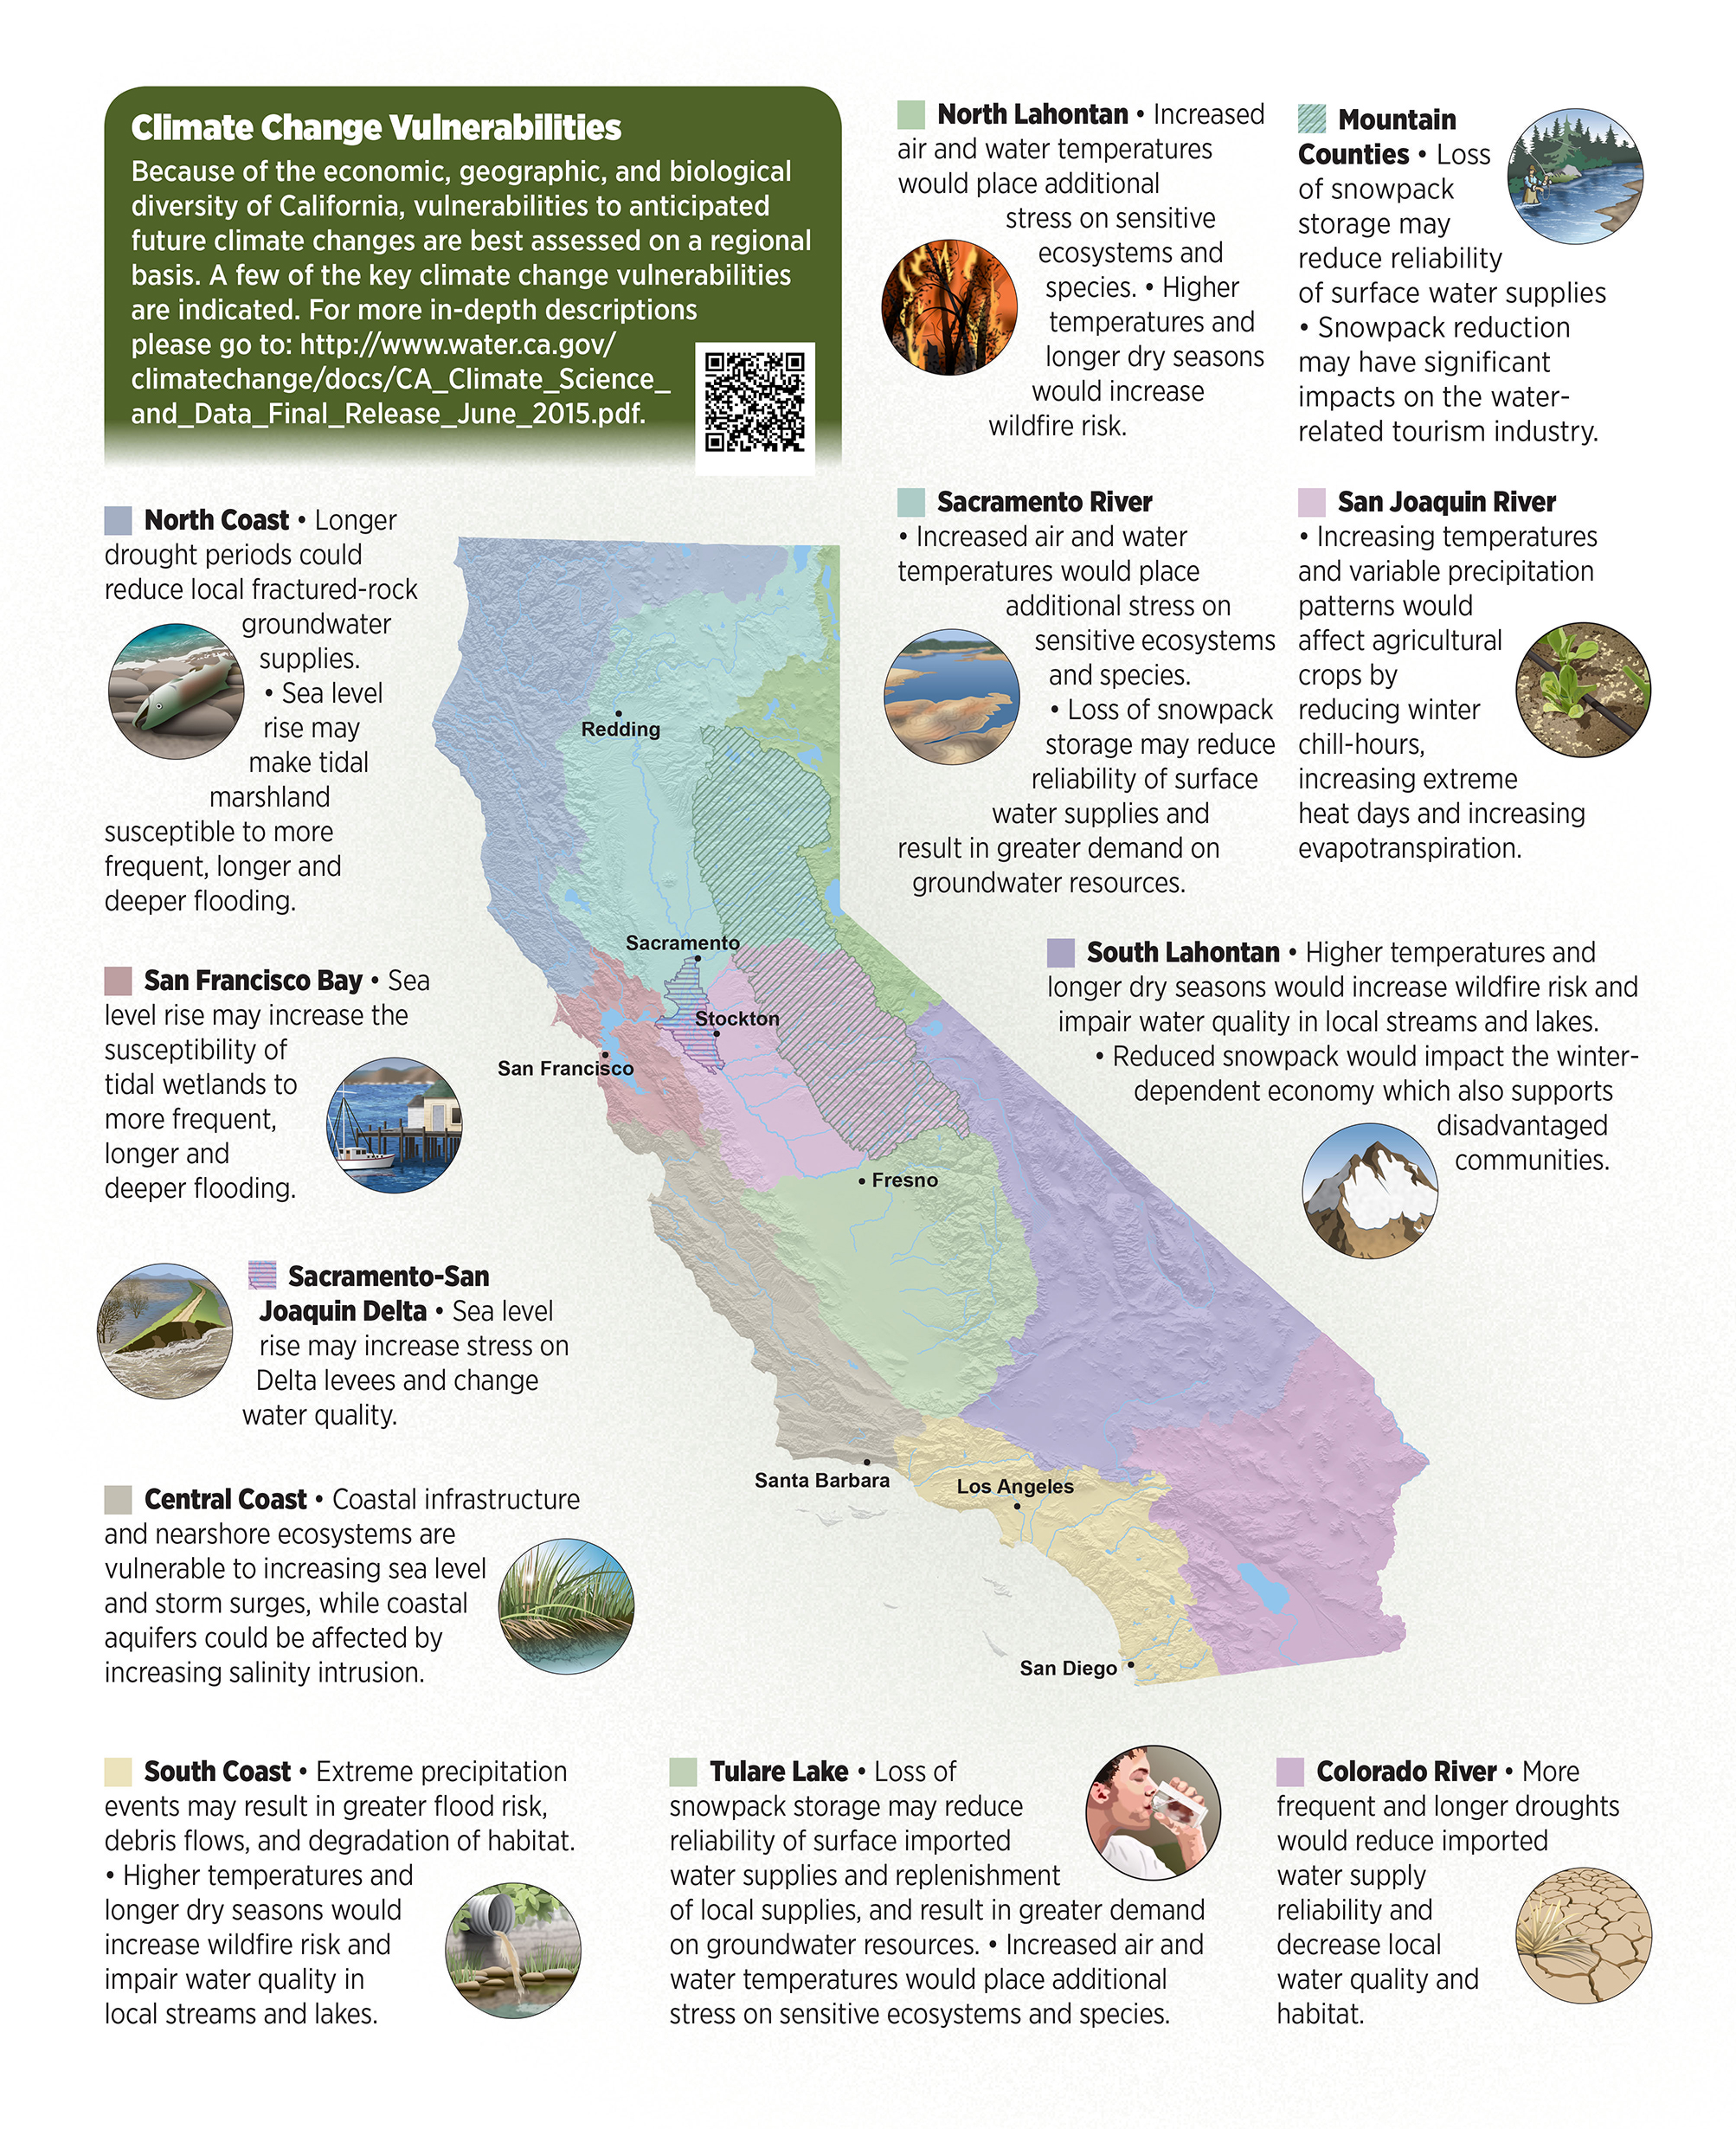 More reliable water supplies for California: Building a